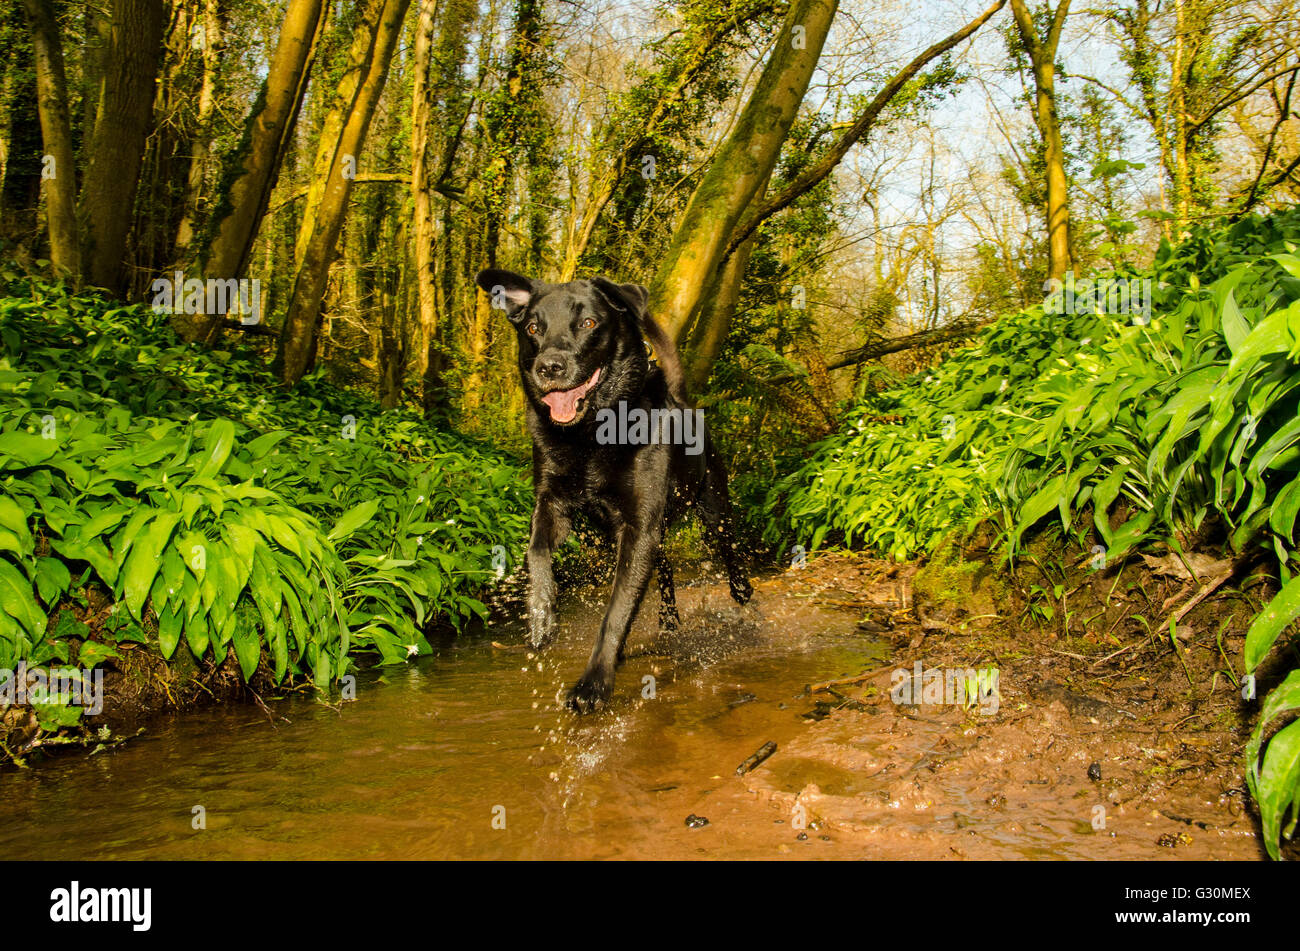 A pet Black Labrador bounds along a stream in spring woodland, Leigh Woods, North Somerset, United Kingdom - Stock Image